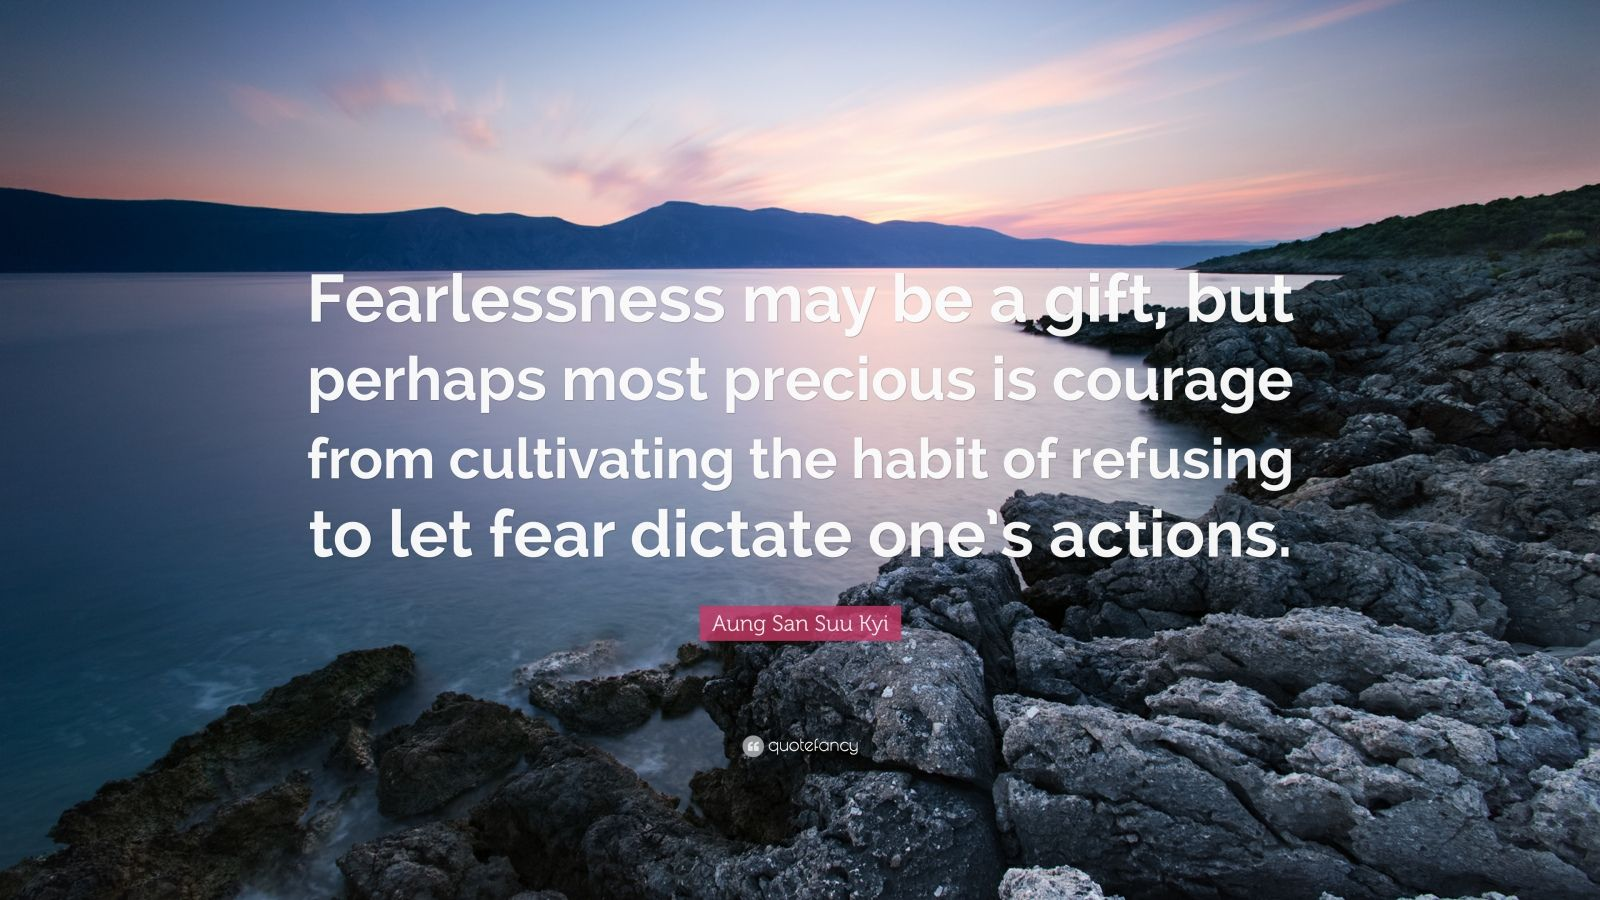 """Aung San Suu Kyi Quote: """"Fearlessness may be a gift, but perhaps most precious is courage from cultivating the habit of refusing to let fear dictate one's actions."""""""